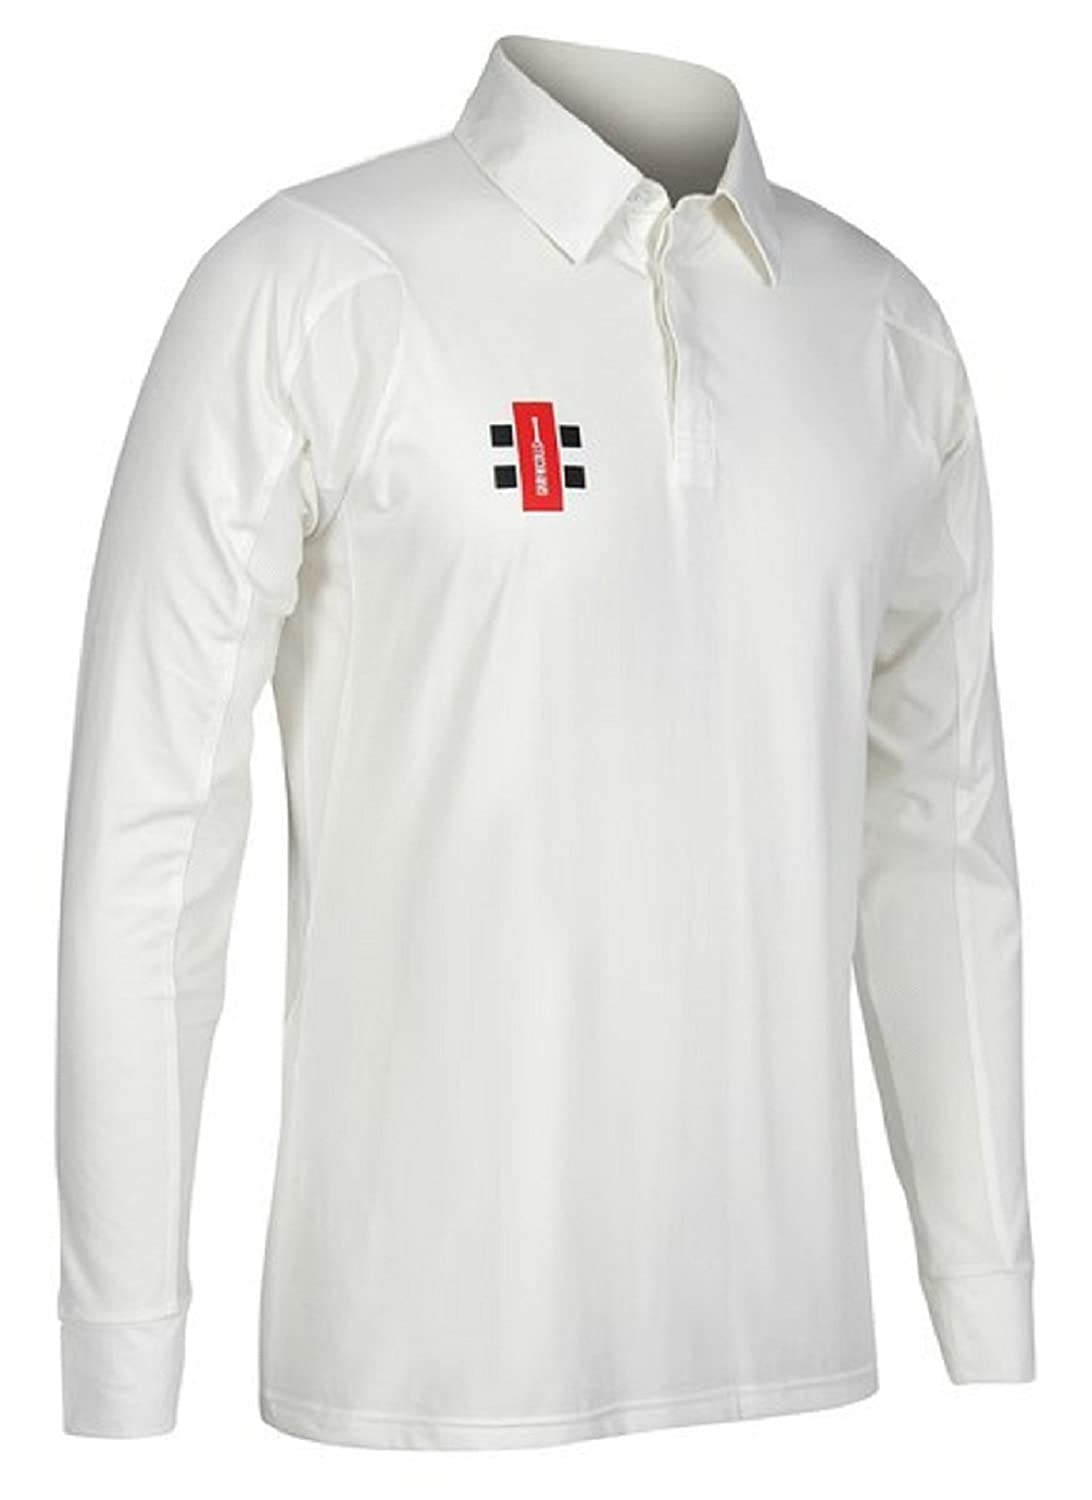 8904ab54e3e1 Amazon.com   Gray Nicolls Cricket T-Shirt Full Sleeve White Uniform Dryfit  Dress 2X Large   Sports   Outdoors